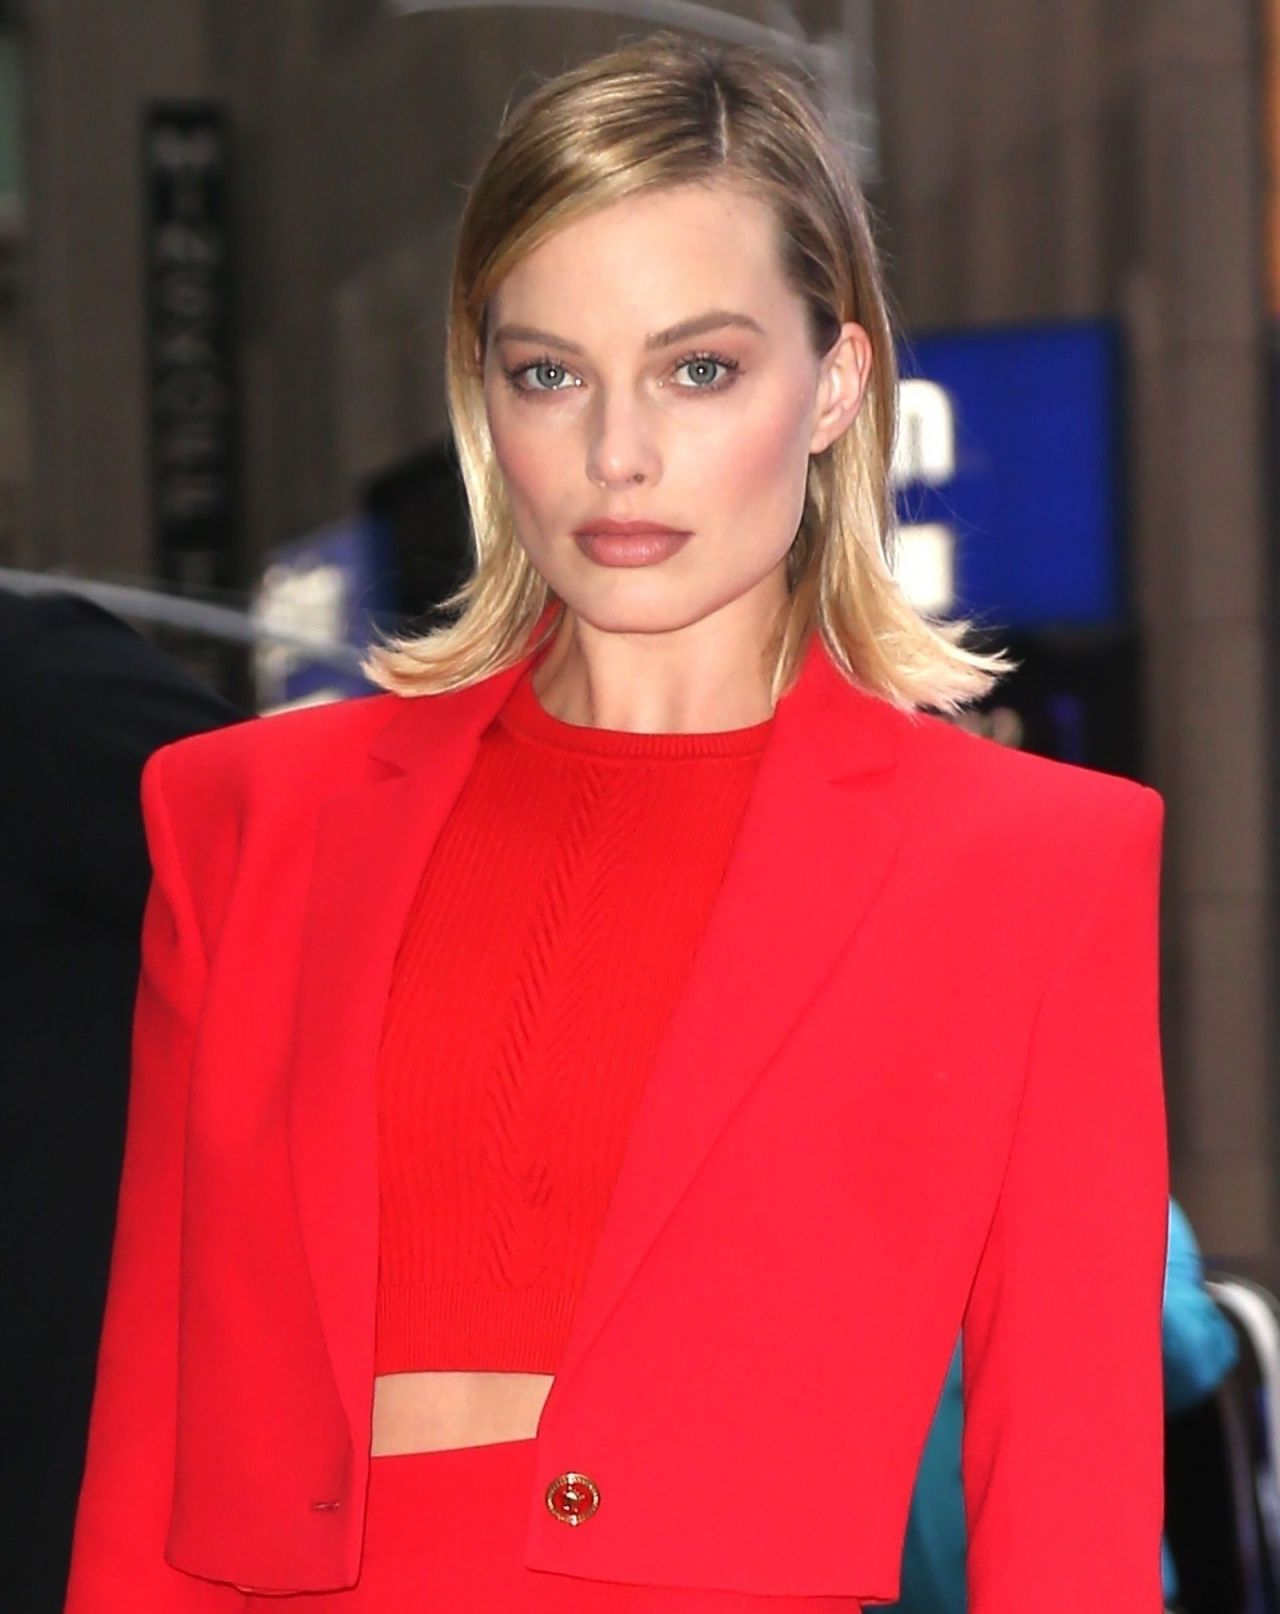 Margot Robbie - Visits the ABC Studios for Good Morning America in NYC